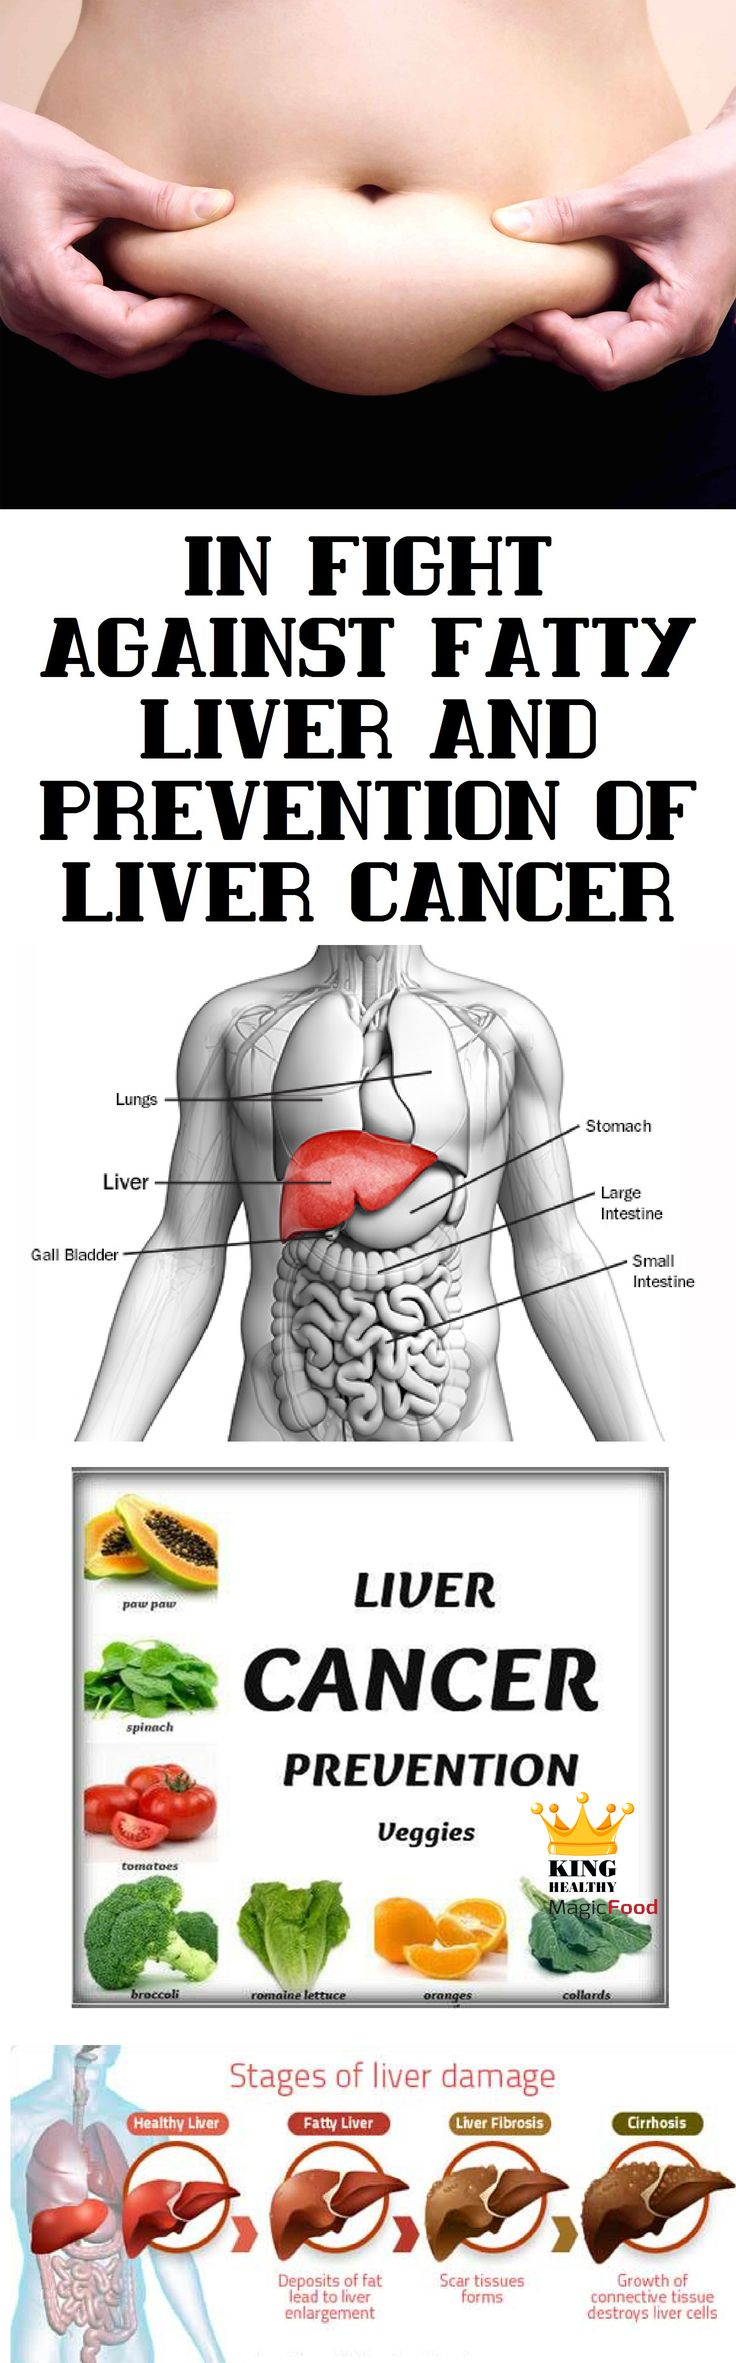 In Fight Against Fatty Liver And Prevention Of Liver Cancer